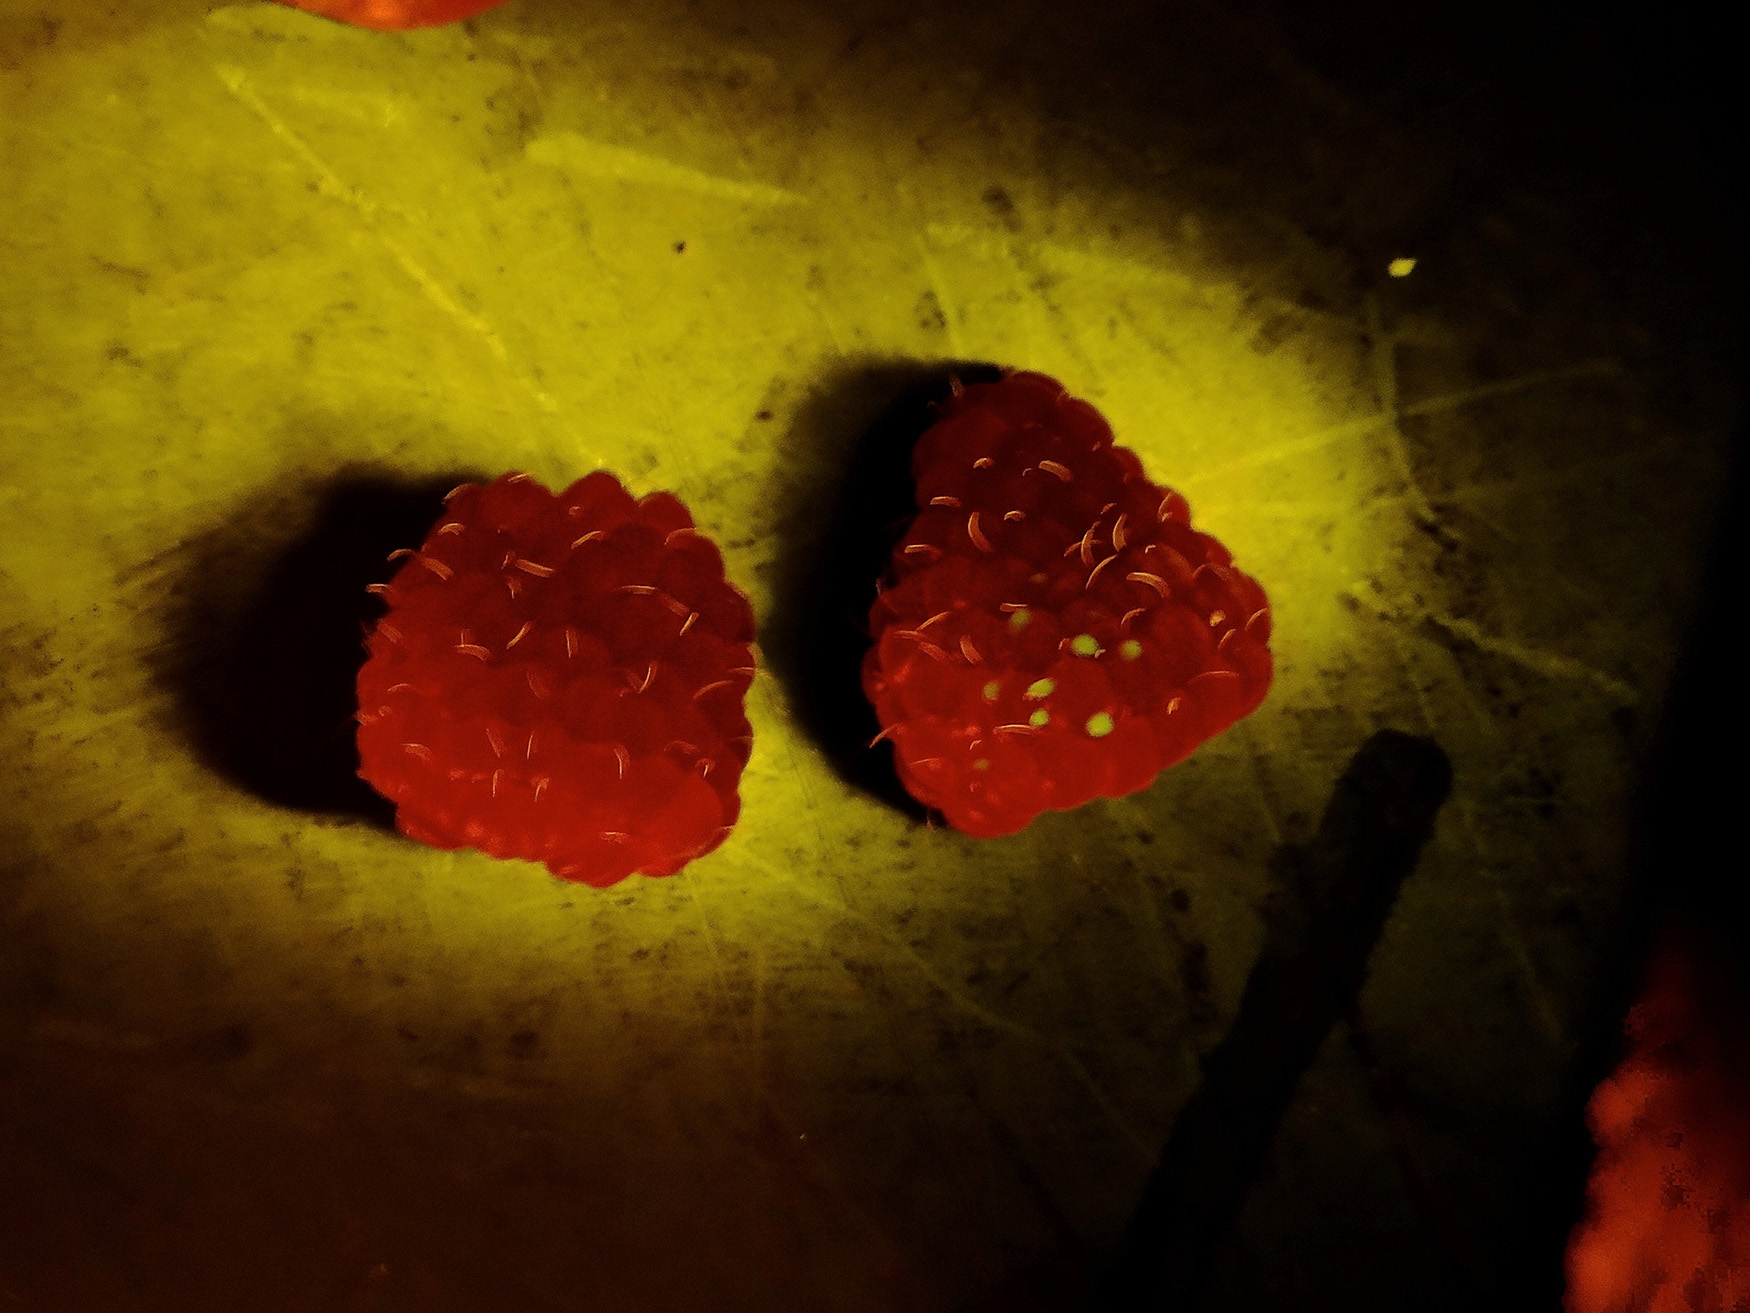 Photo of two rasberries